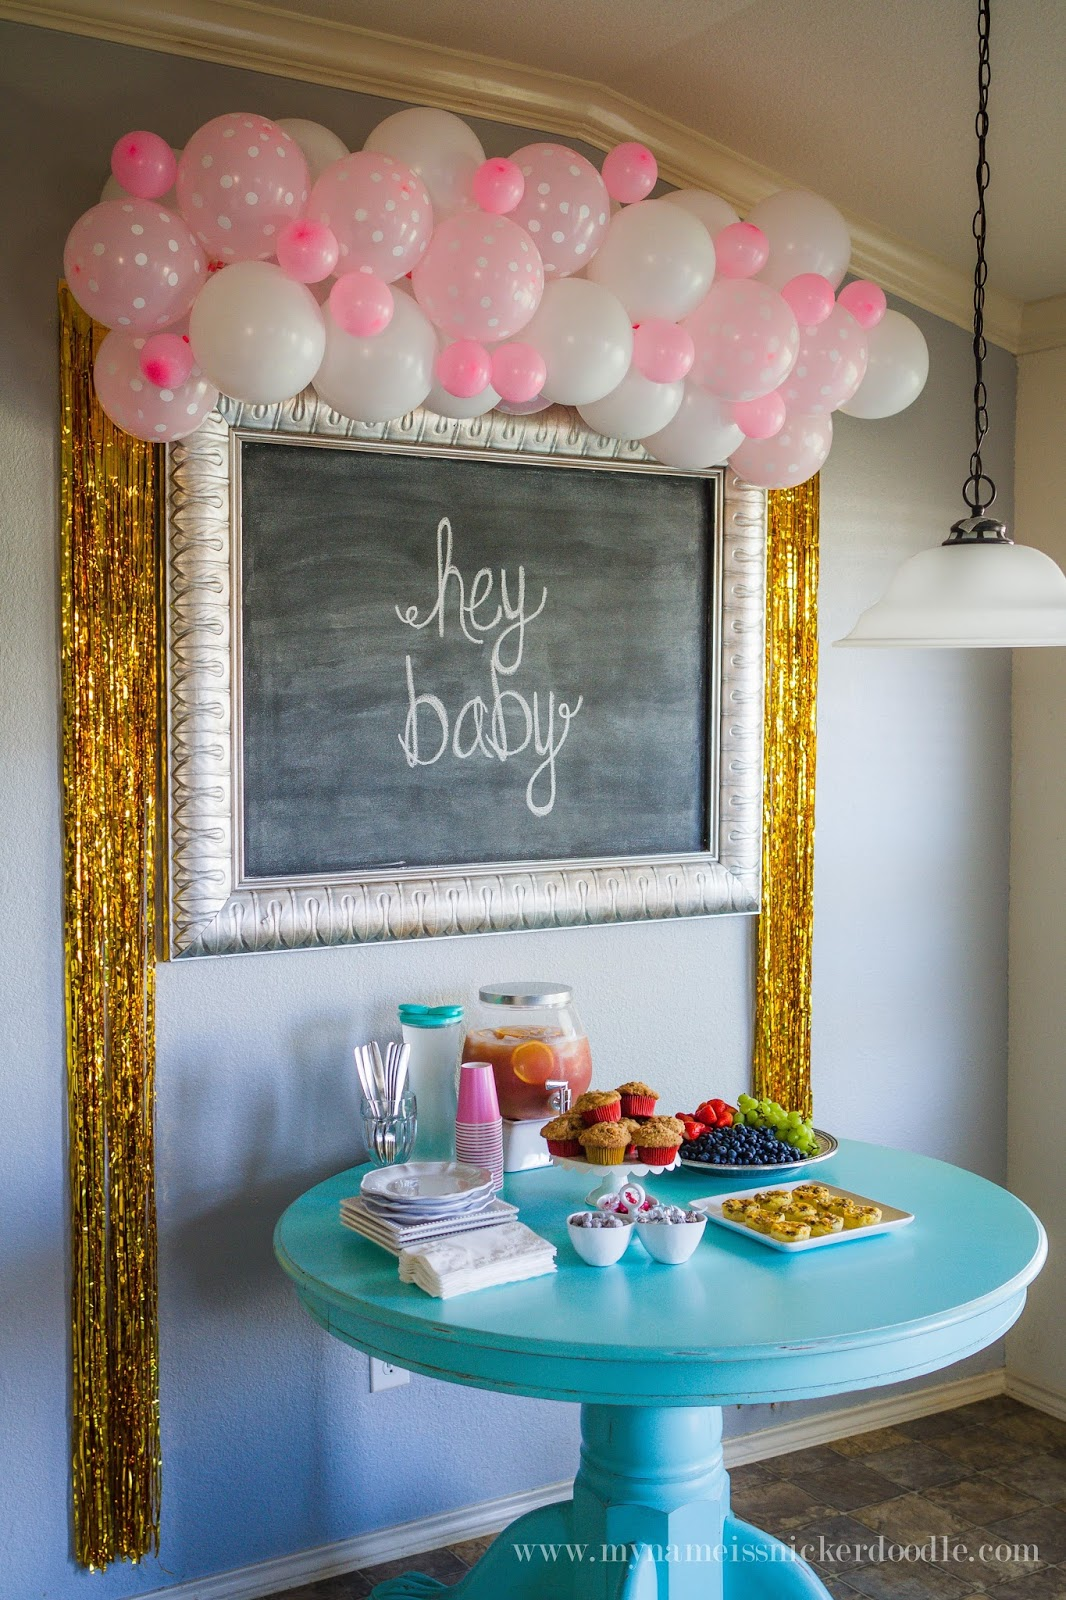 Here Is A Super Adorable Idea For Baby Shower Or Brunch Party Decorations